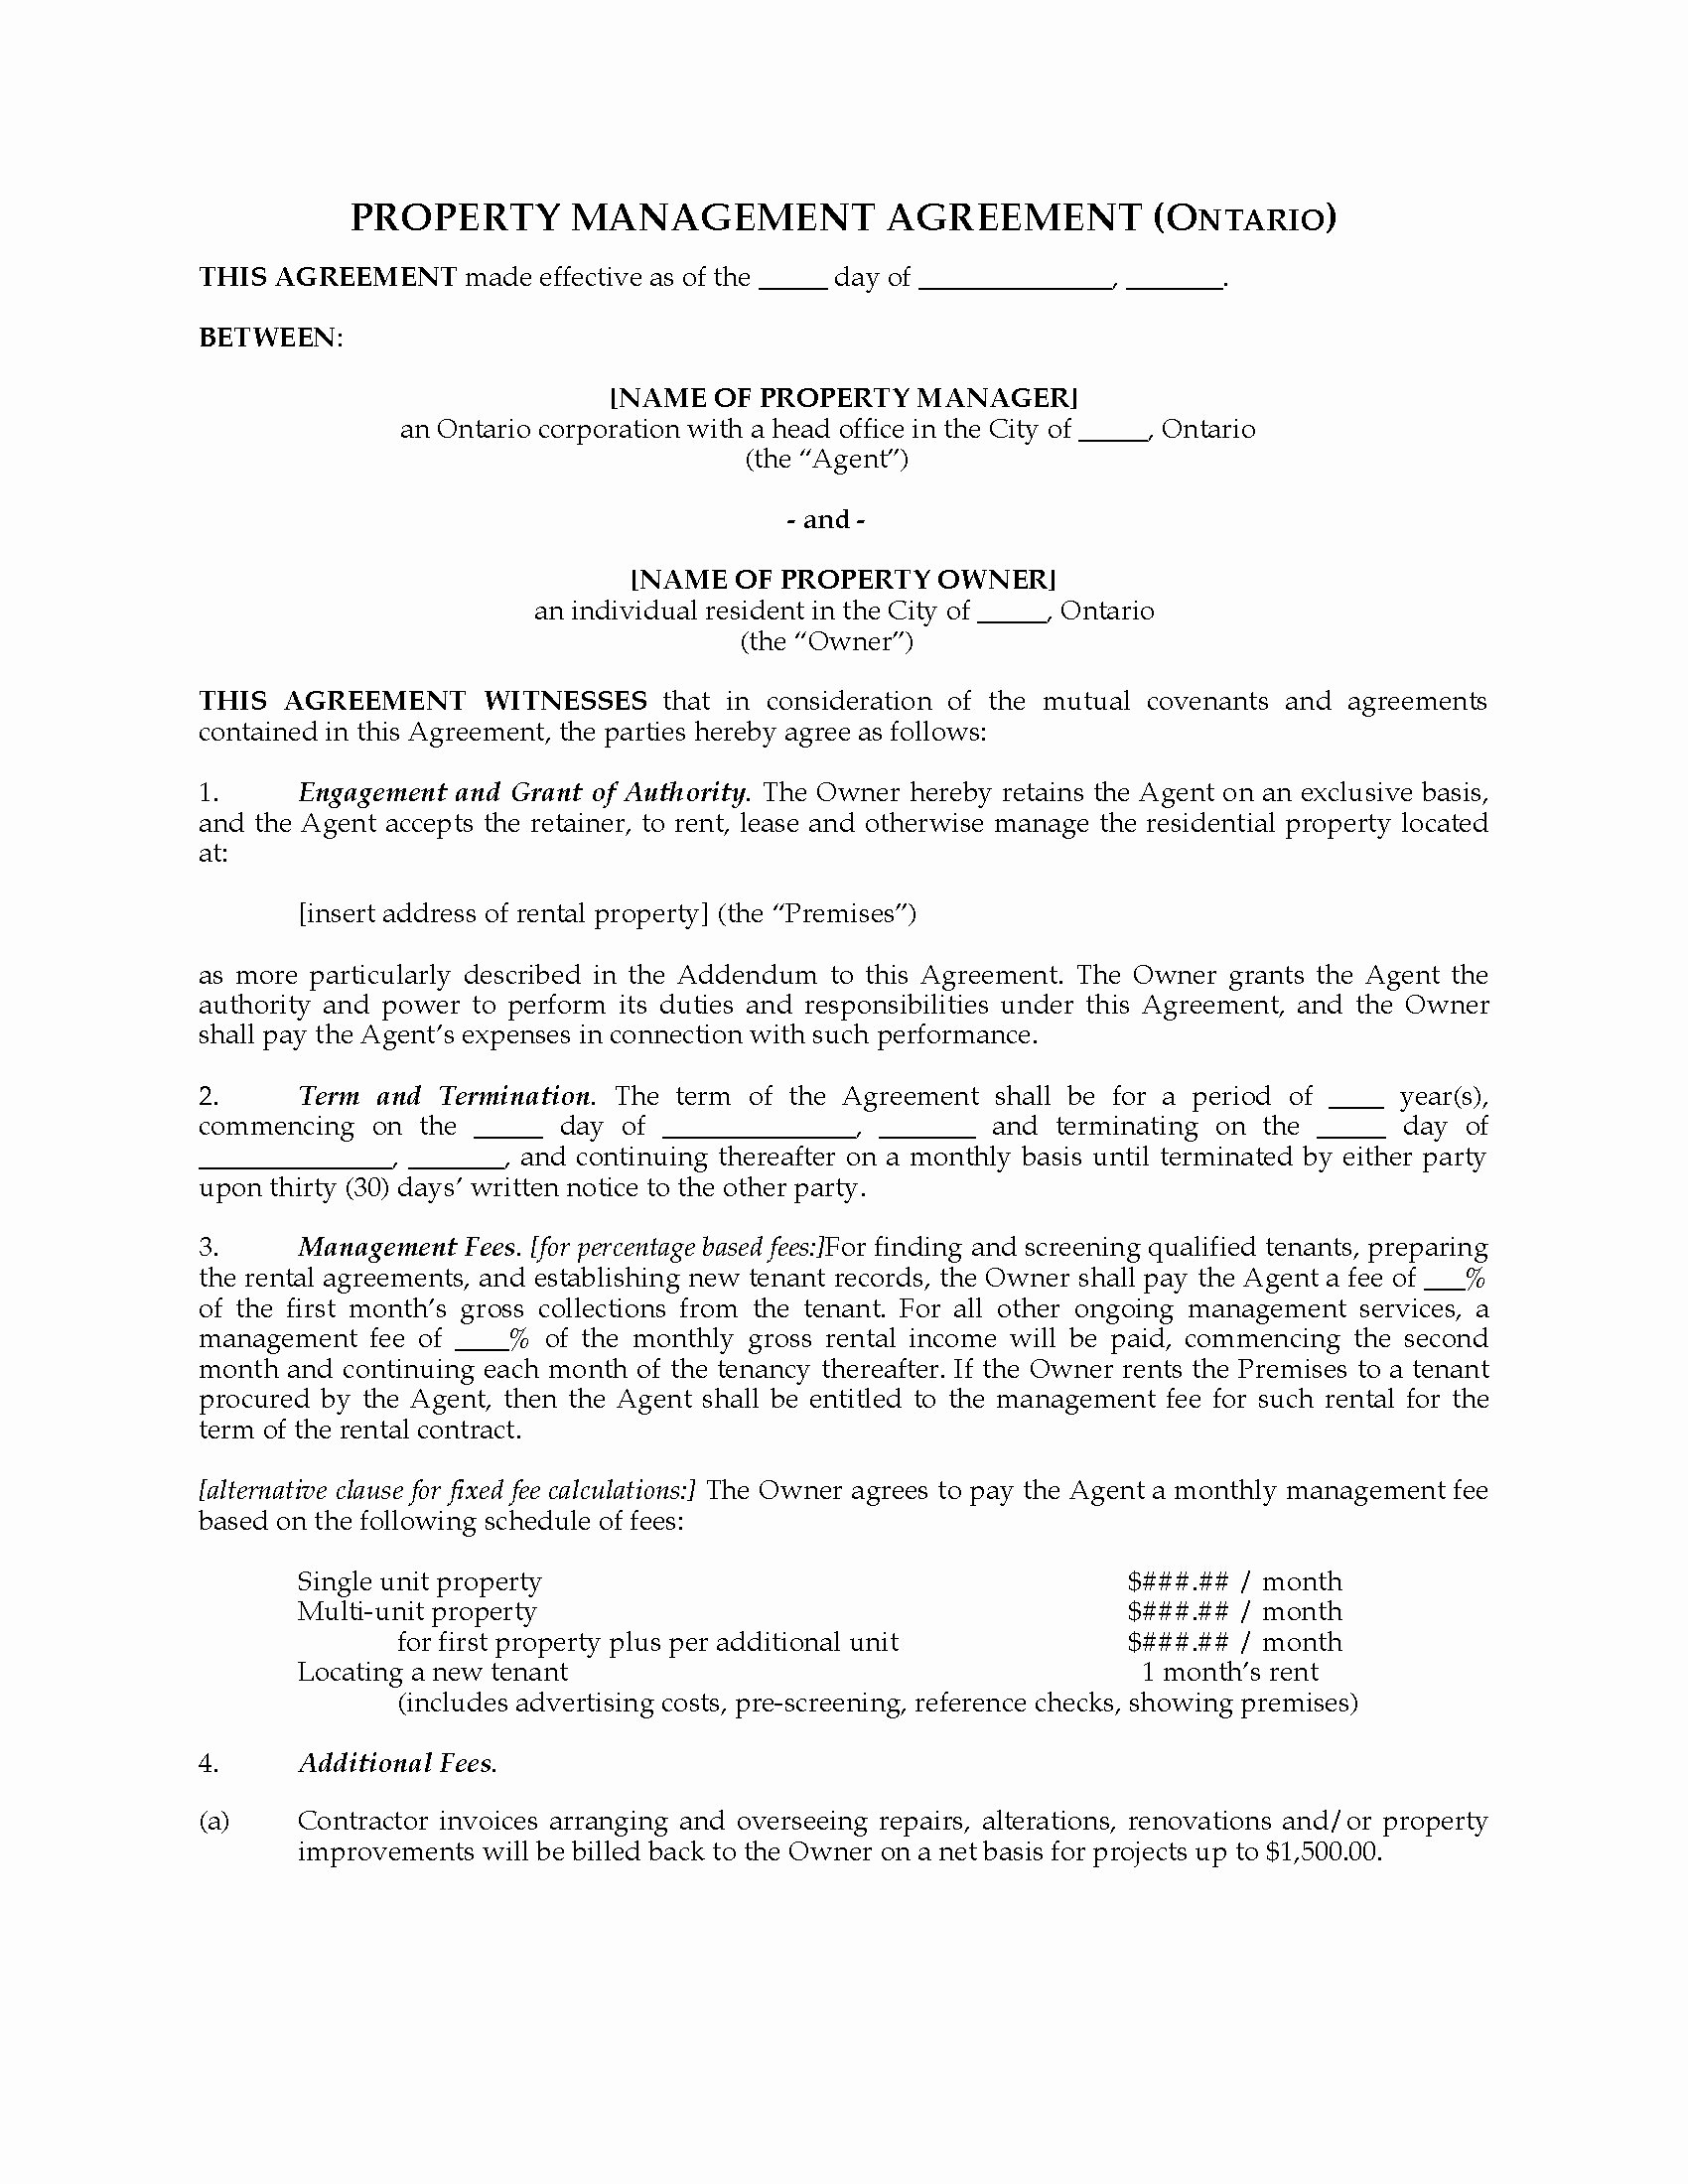 Tario Rental Property Management Agreement